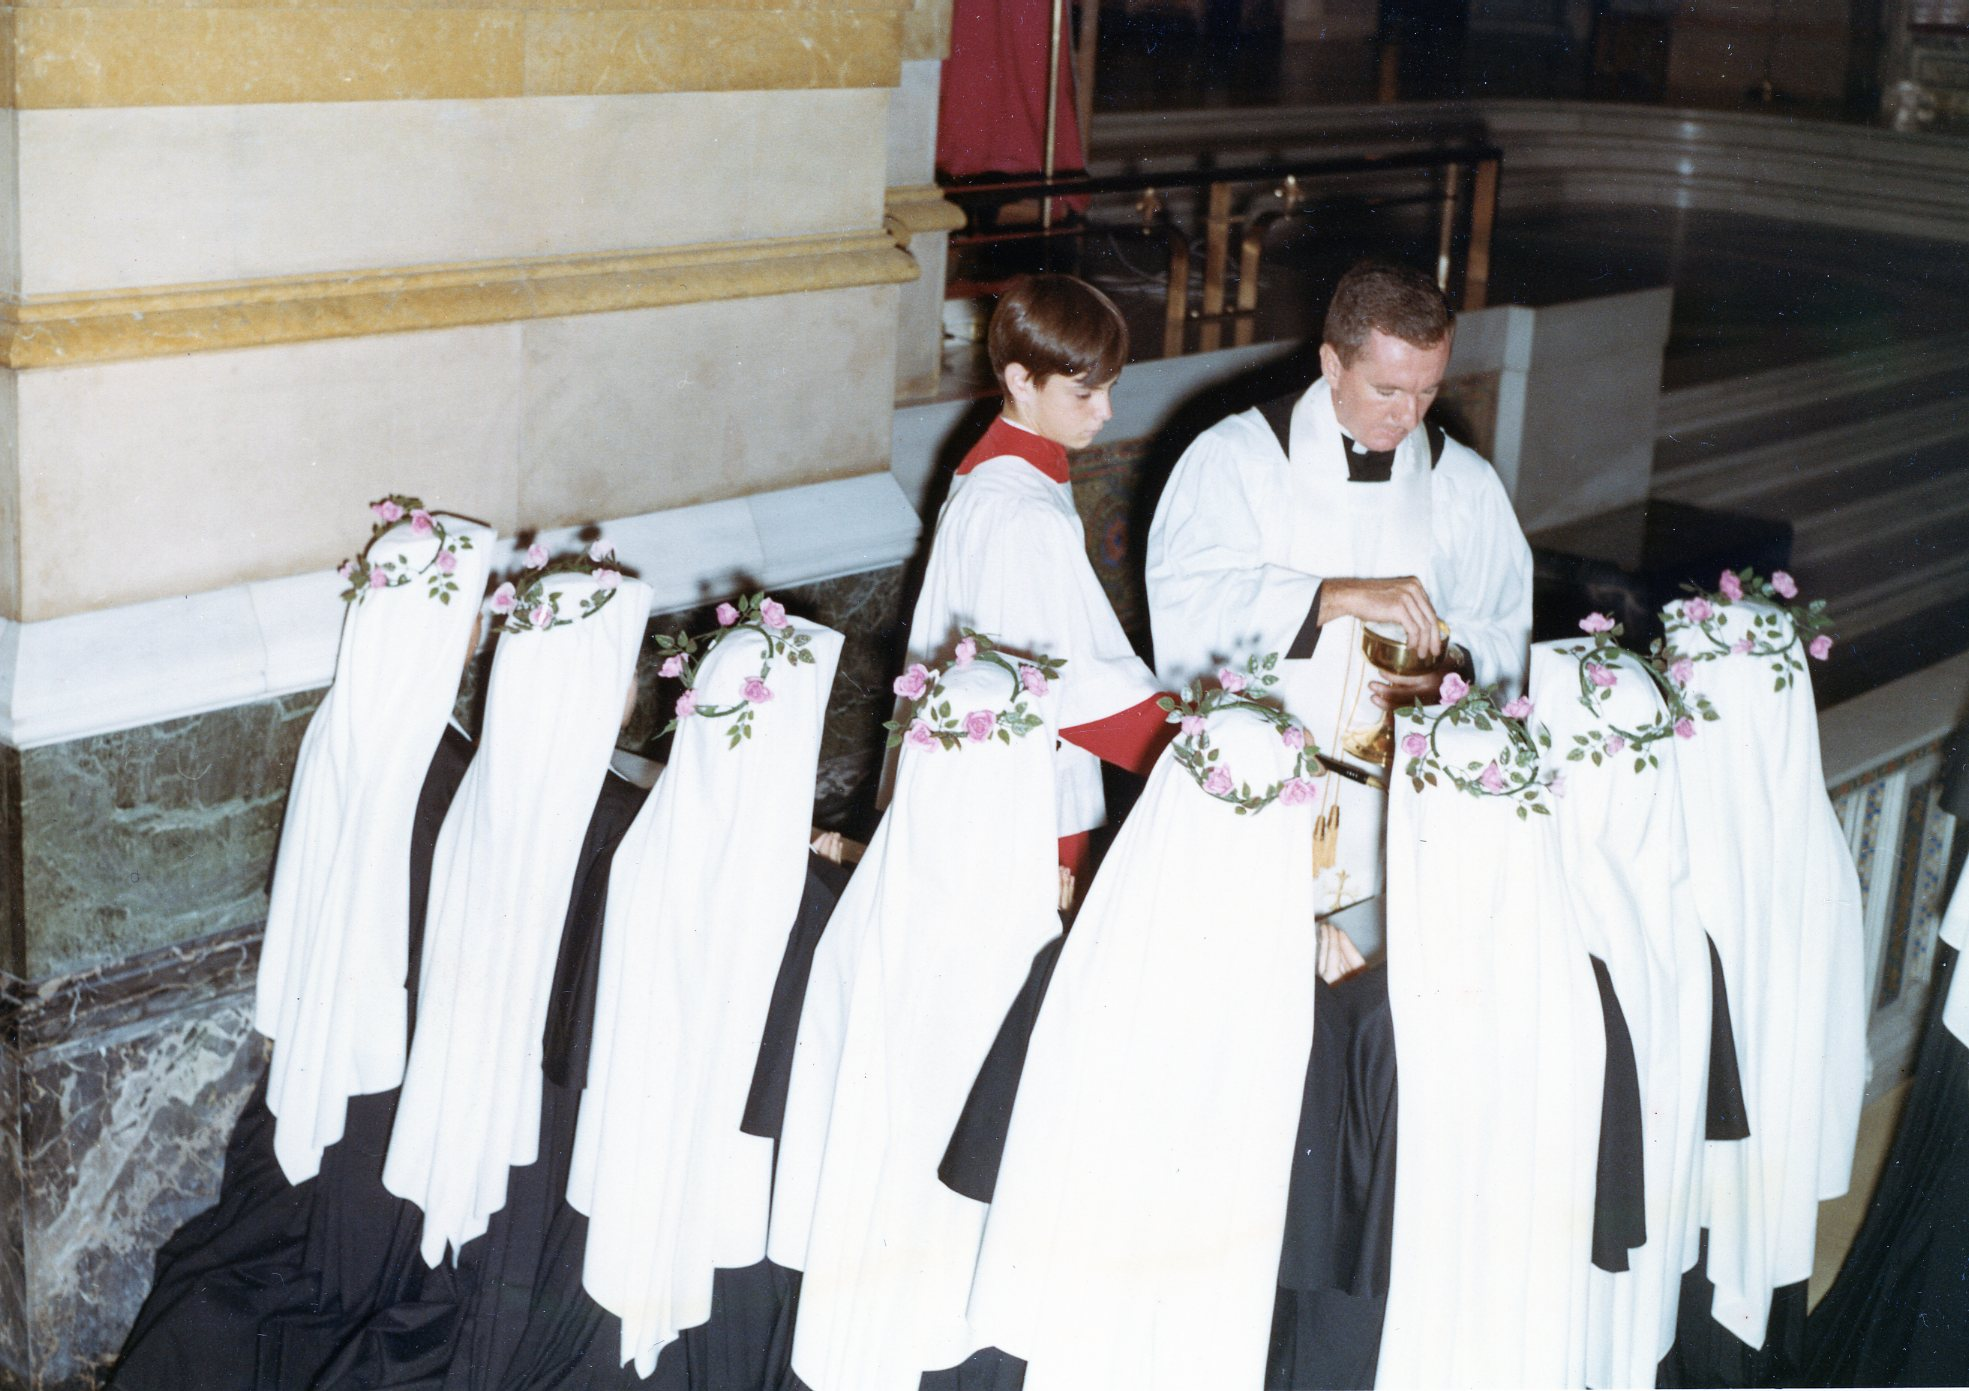 SSND reception ceremony, St. Louis 1966